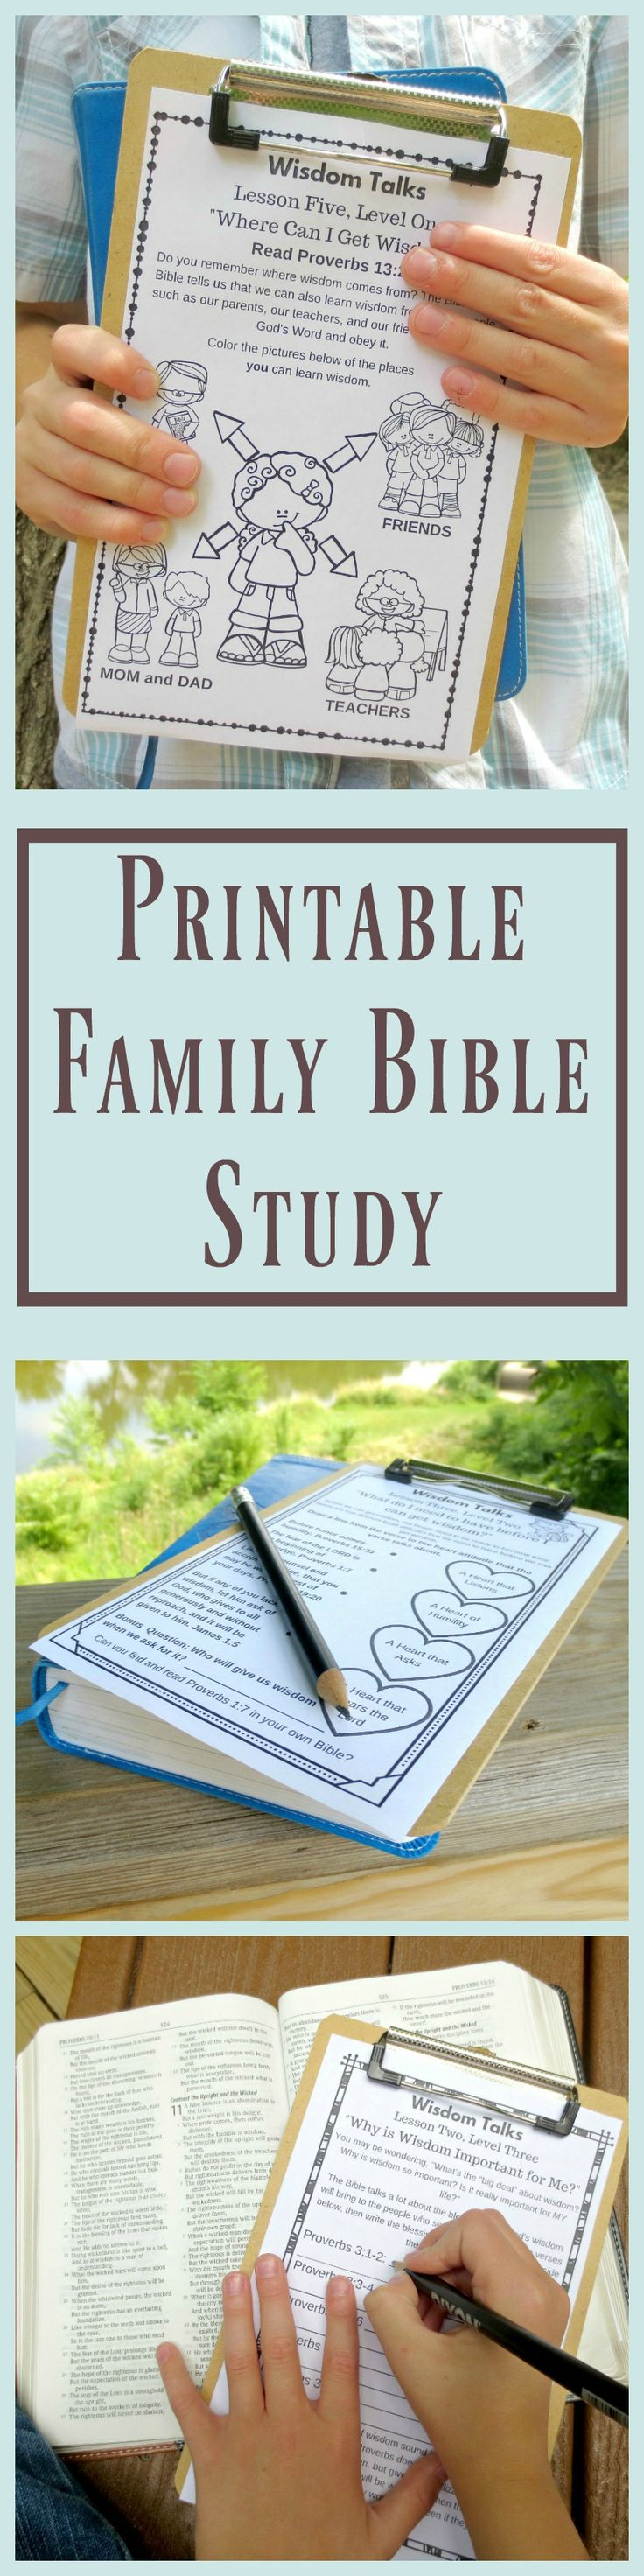 Bible Hub: Search, Read, Study the Bible in Many Languages